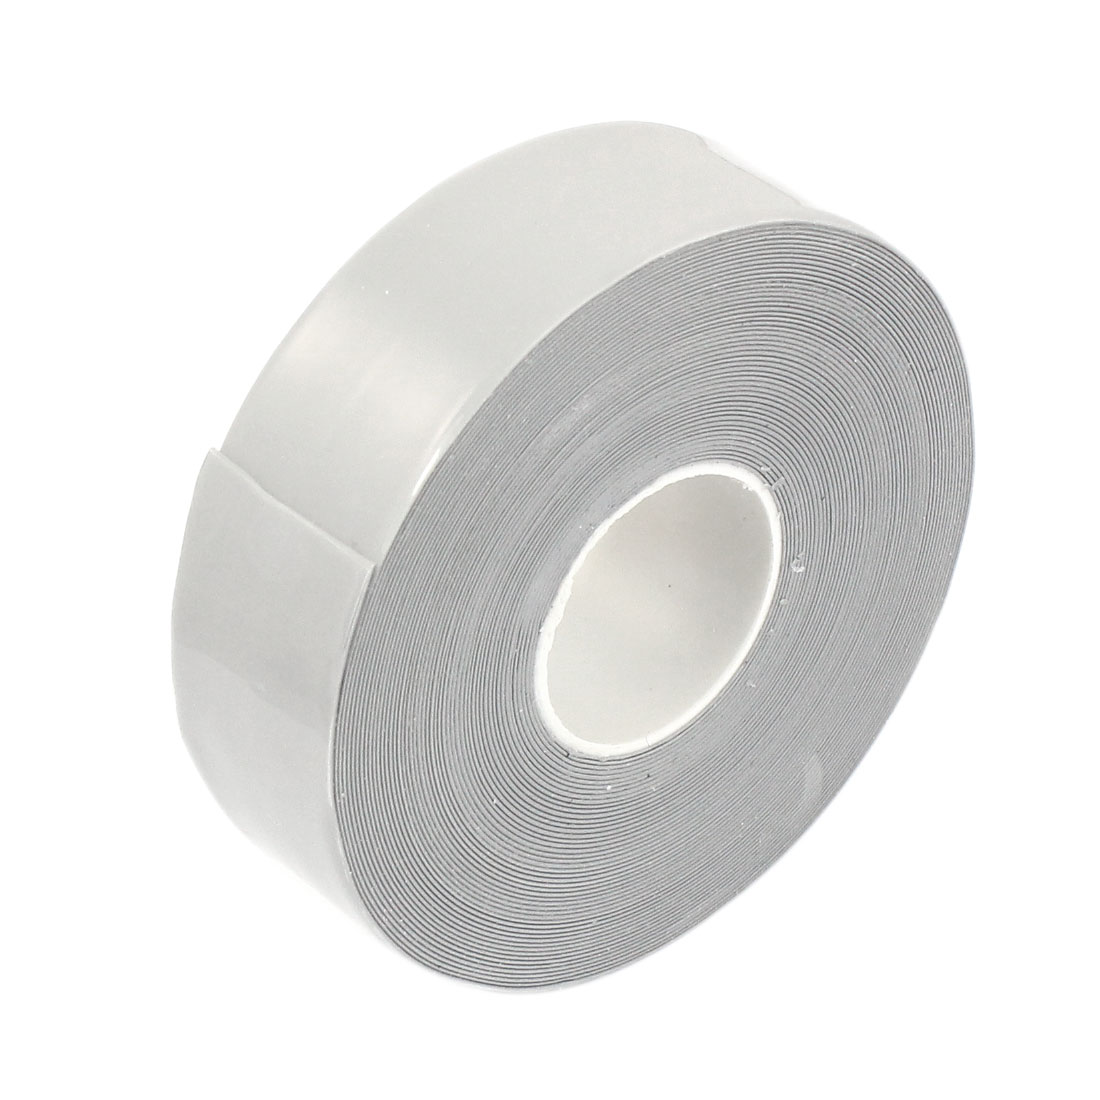 Gray Rubber 25mm Width Self Adhesive High Voltage Insulation Electrical Tape 5M